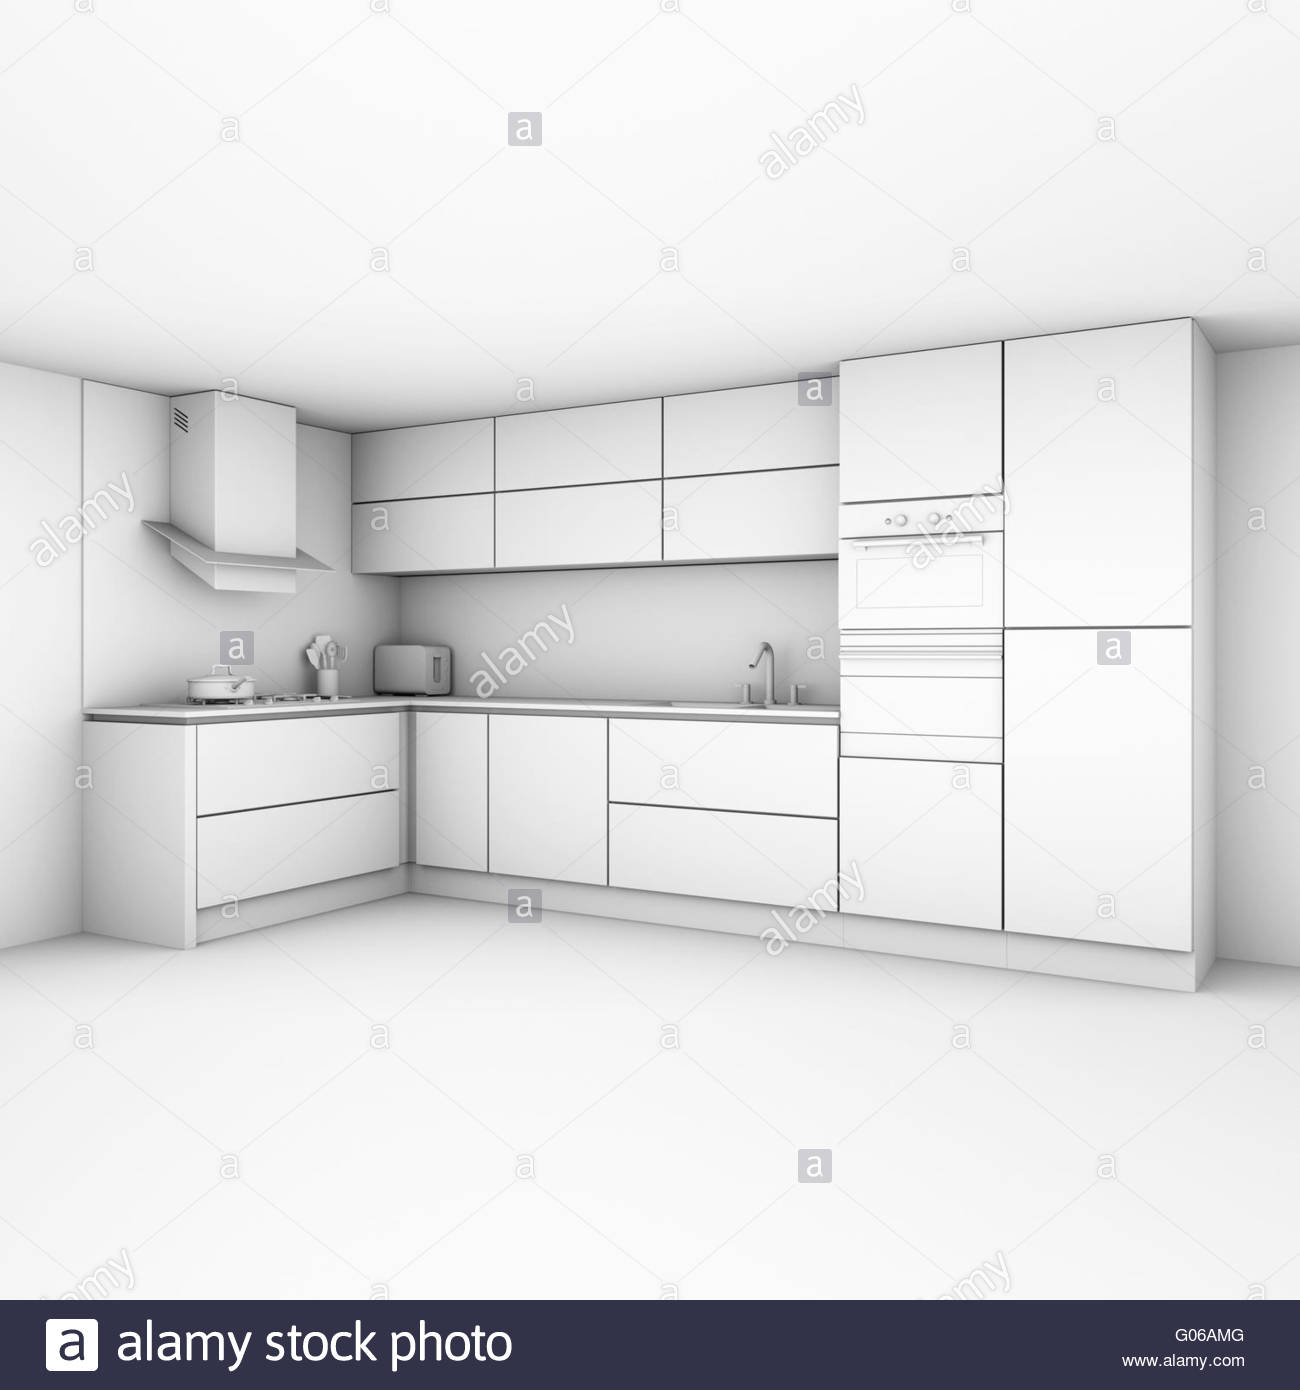 Modern kitchen cabinets in new white interior - Stock Image